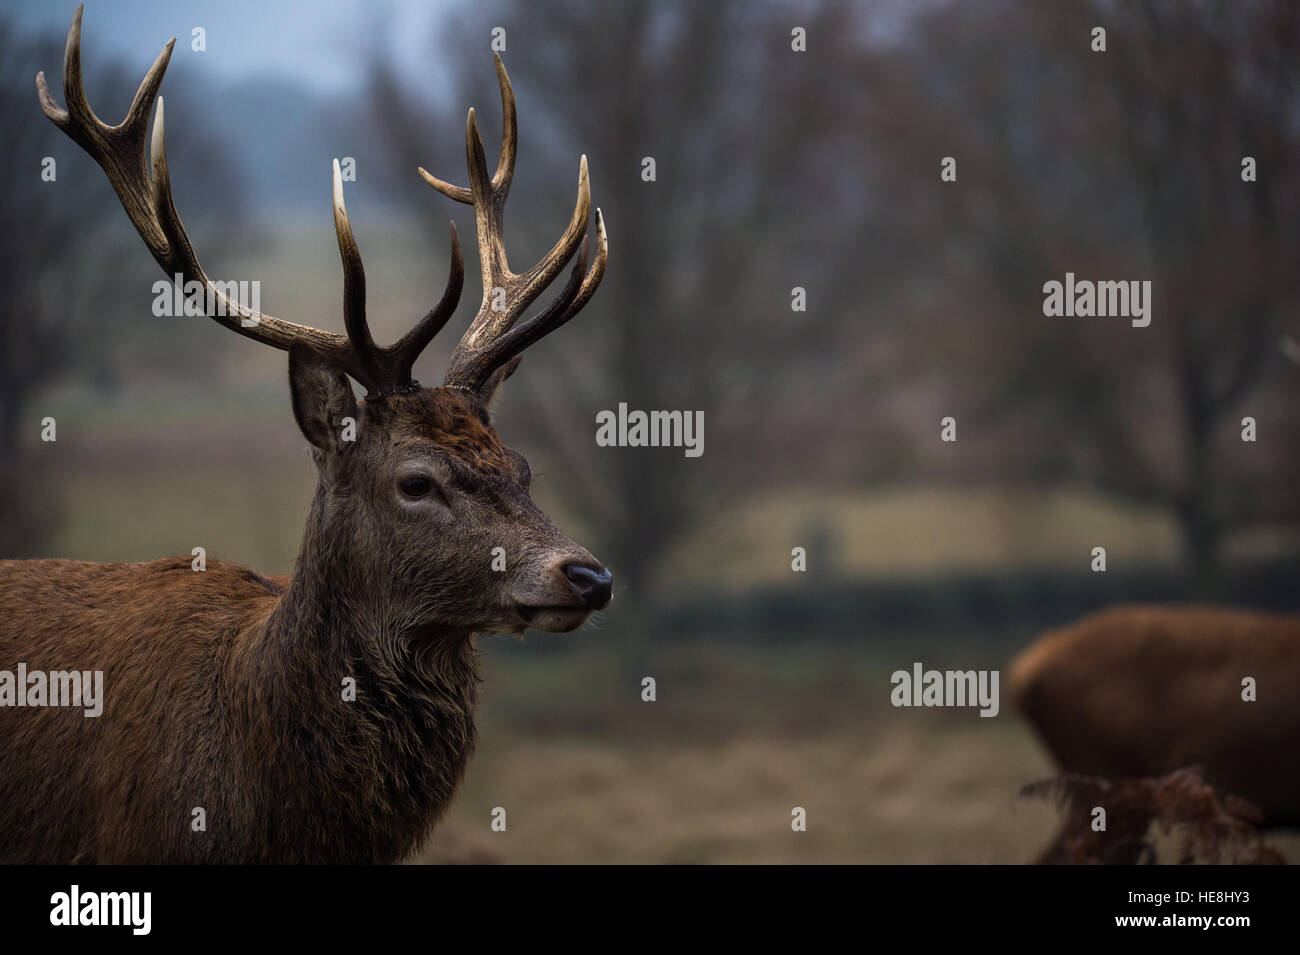 Red deer in Richmond park, London, England - Stock Image